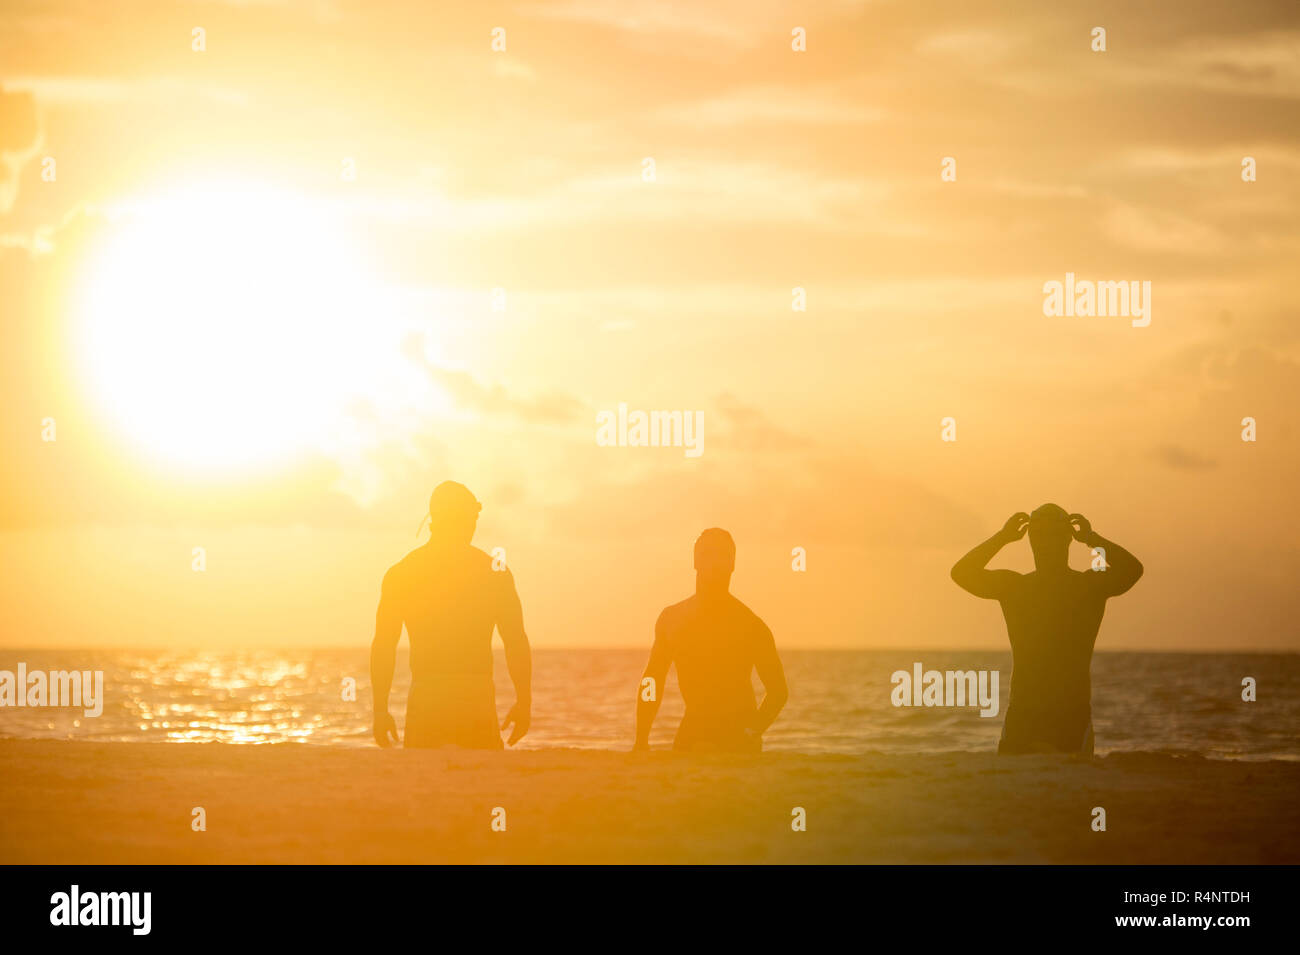 4cb853a5a03 View of silhouettes of three men in swimming caps on beach at sunrise, PlayaÂ